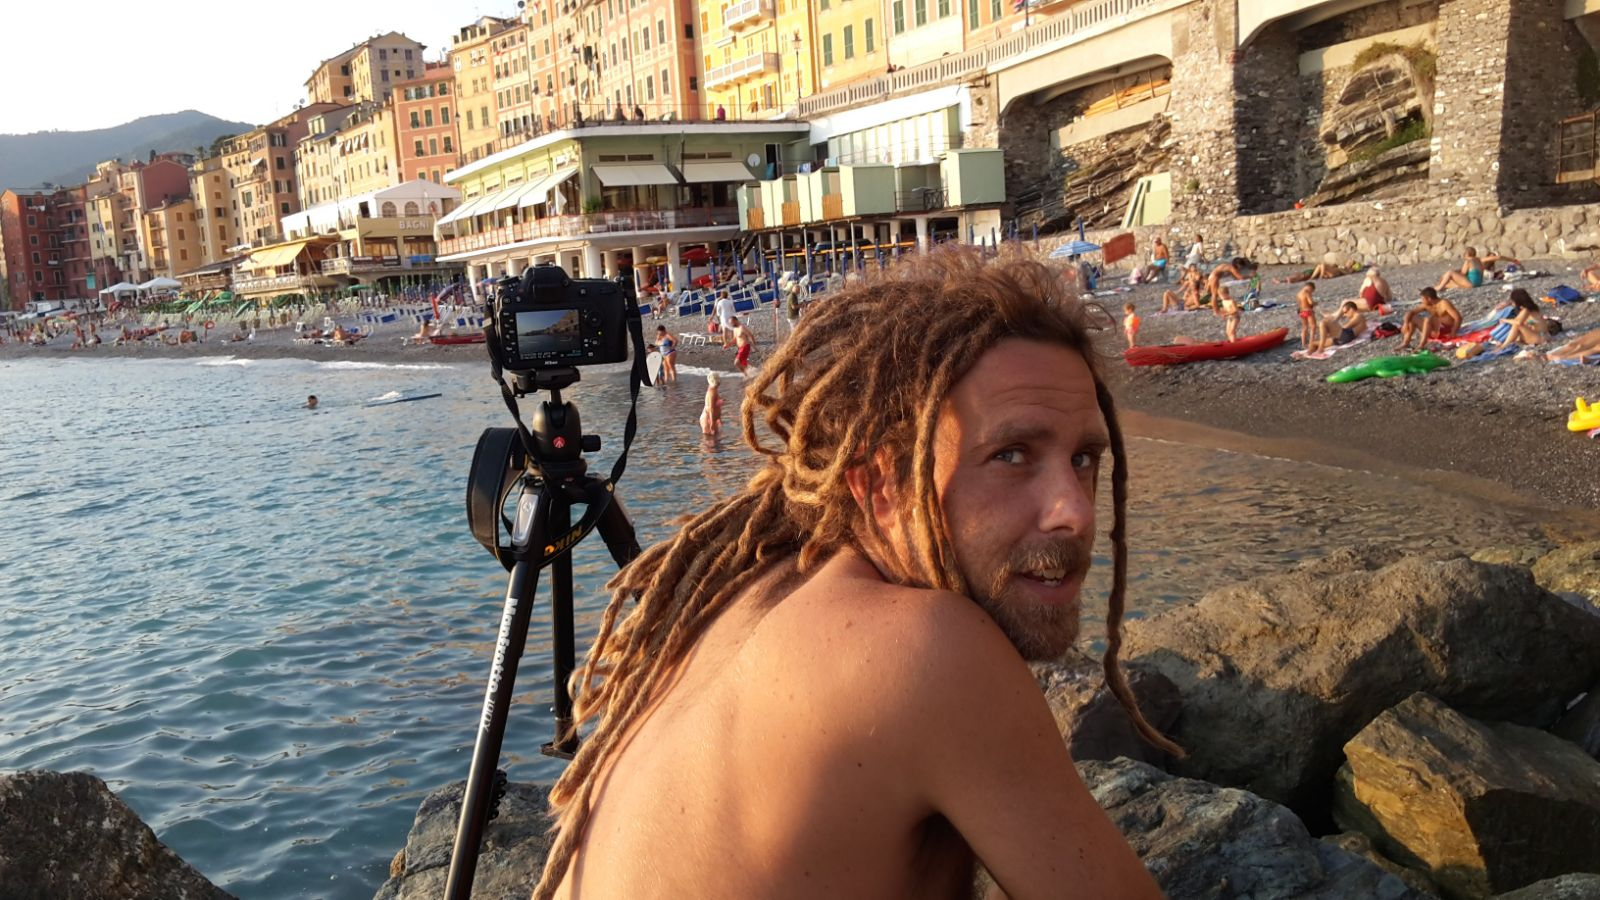 Photographer Simone Scalise while shooting the beach of Genoa